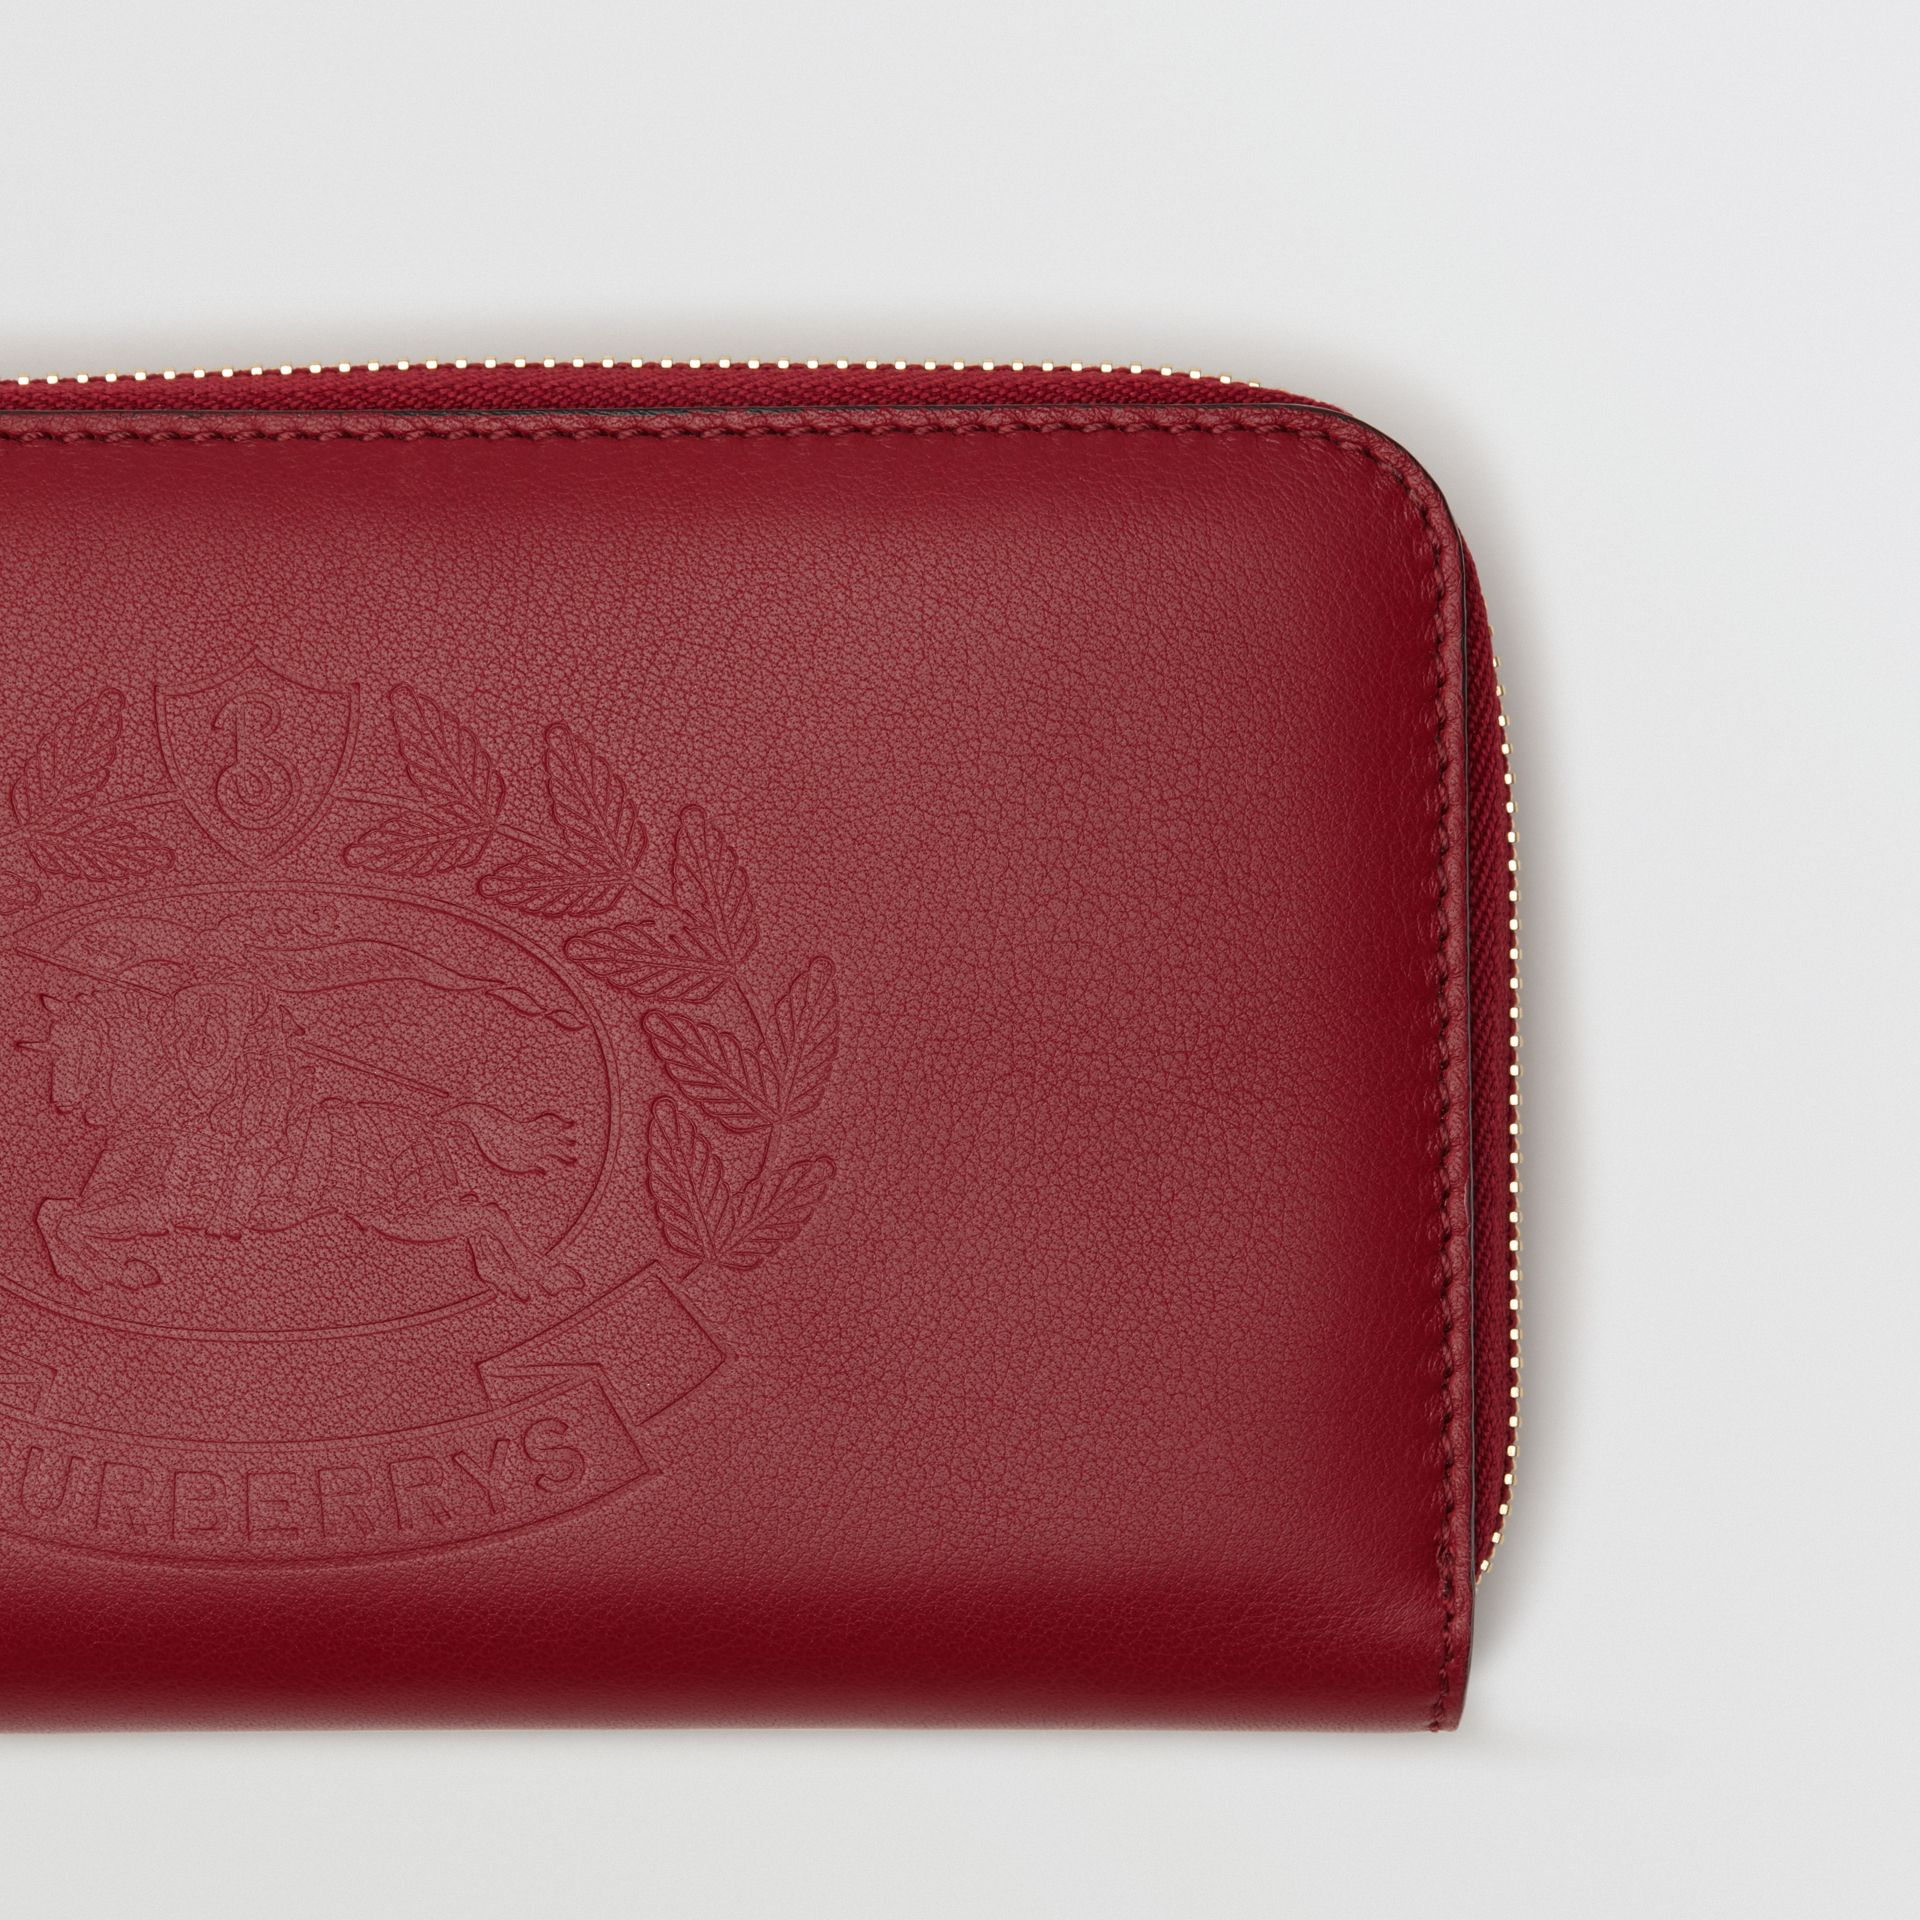 Embossed Crest Two-tone Leather Ziparound Wallet in Crimson - Women | Burberry - gallery image 1